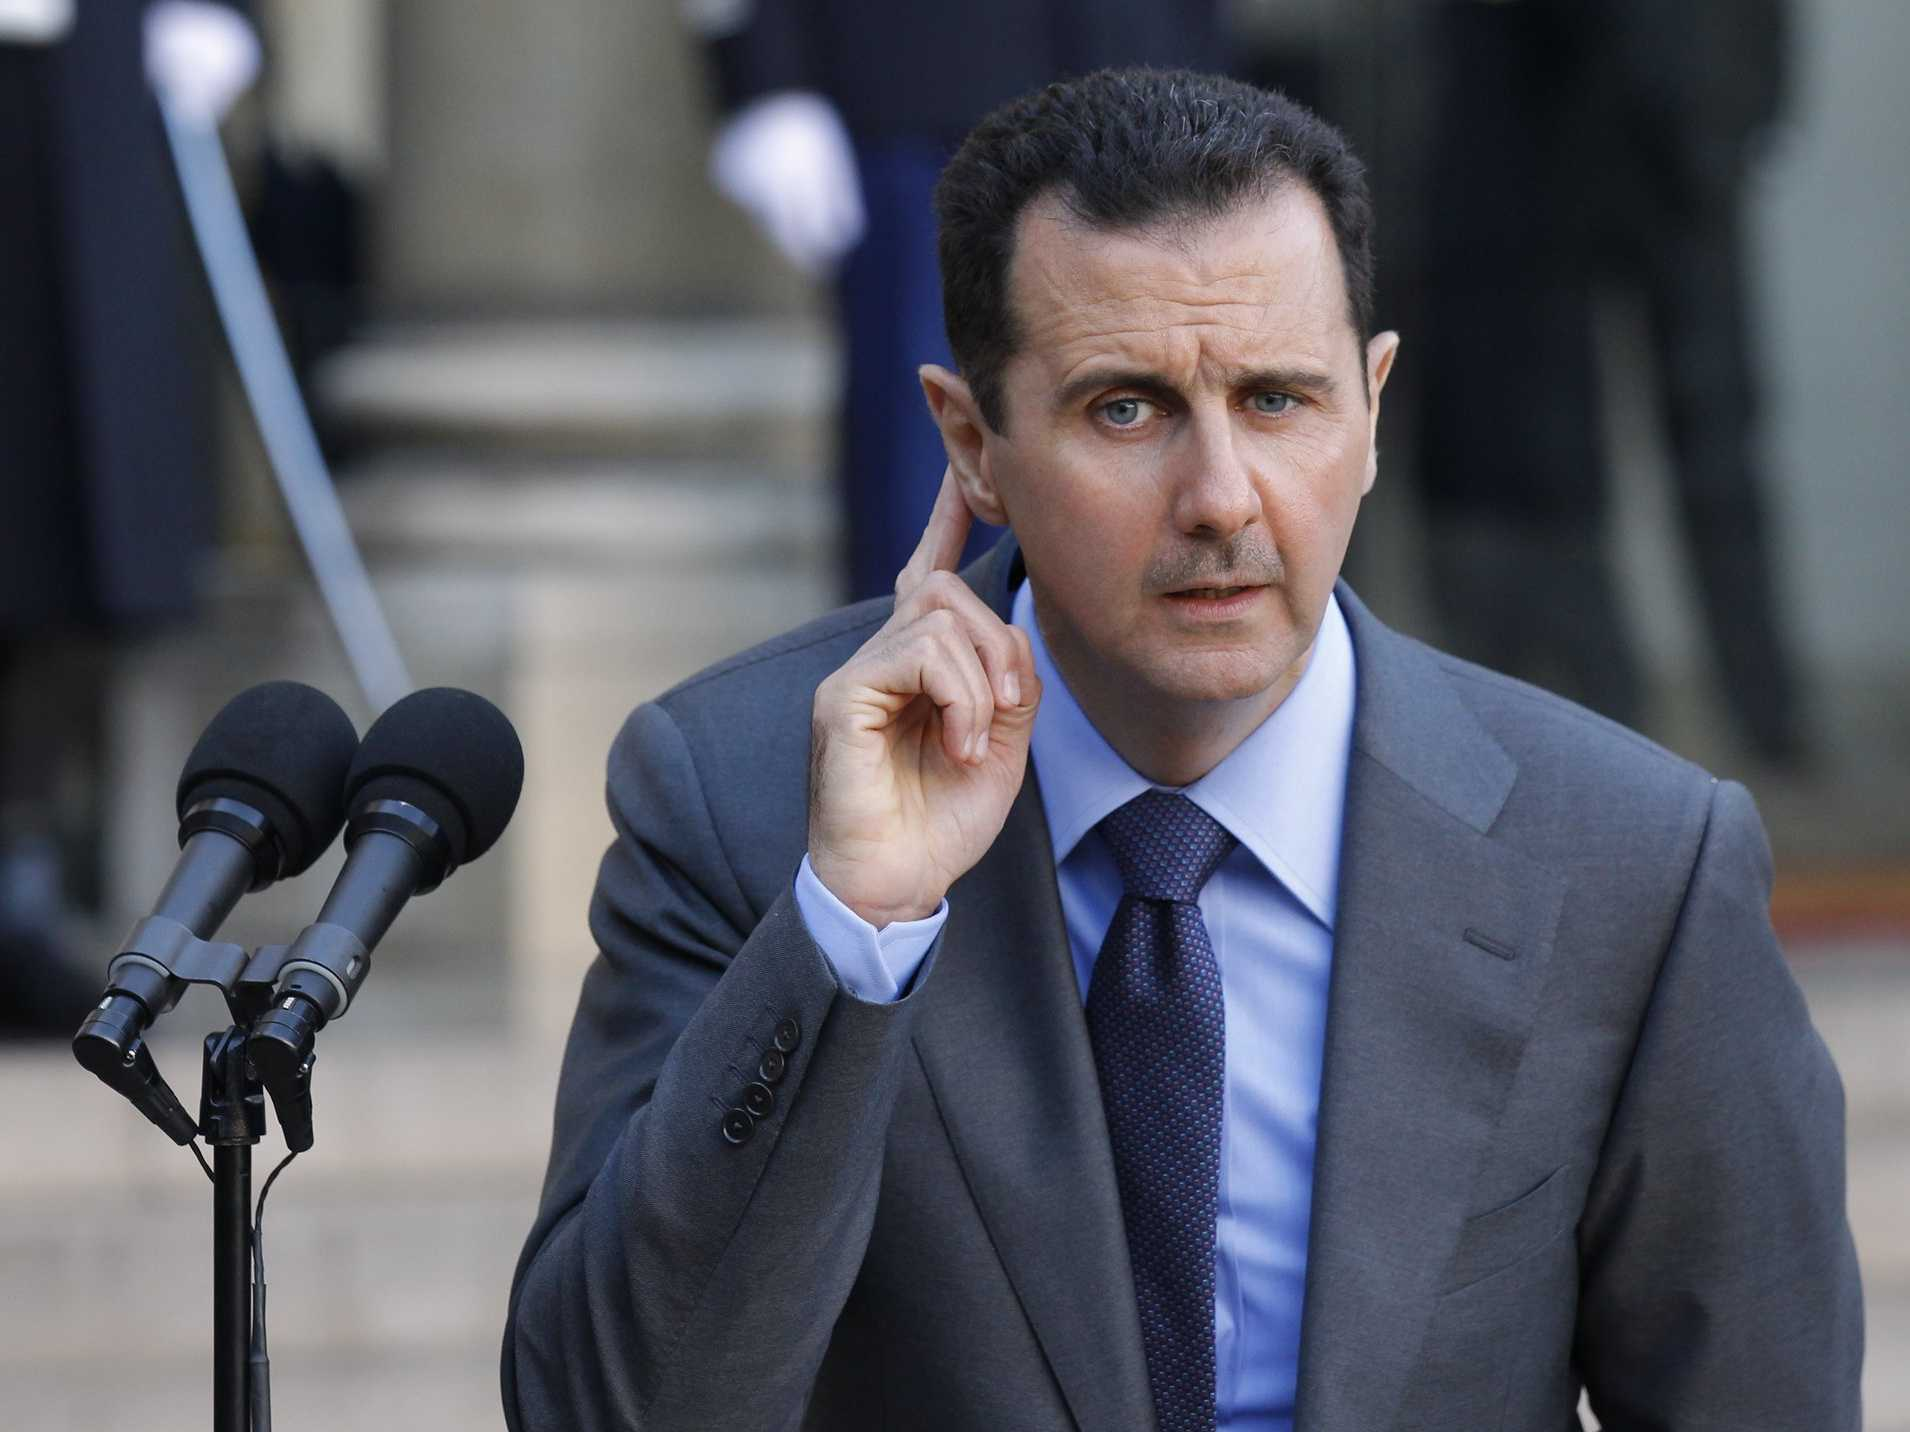 the-west-has-hard-evidence-that-assad-used-chemical-weapons-in-syria